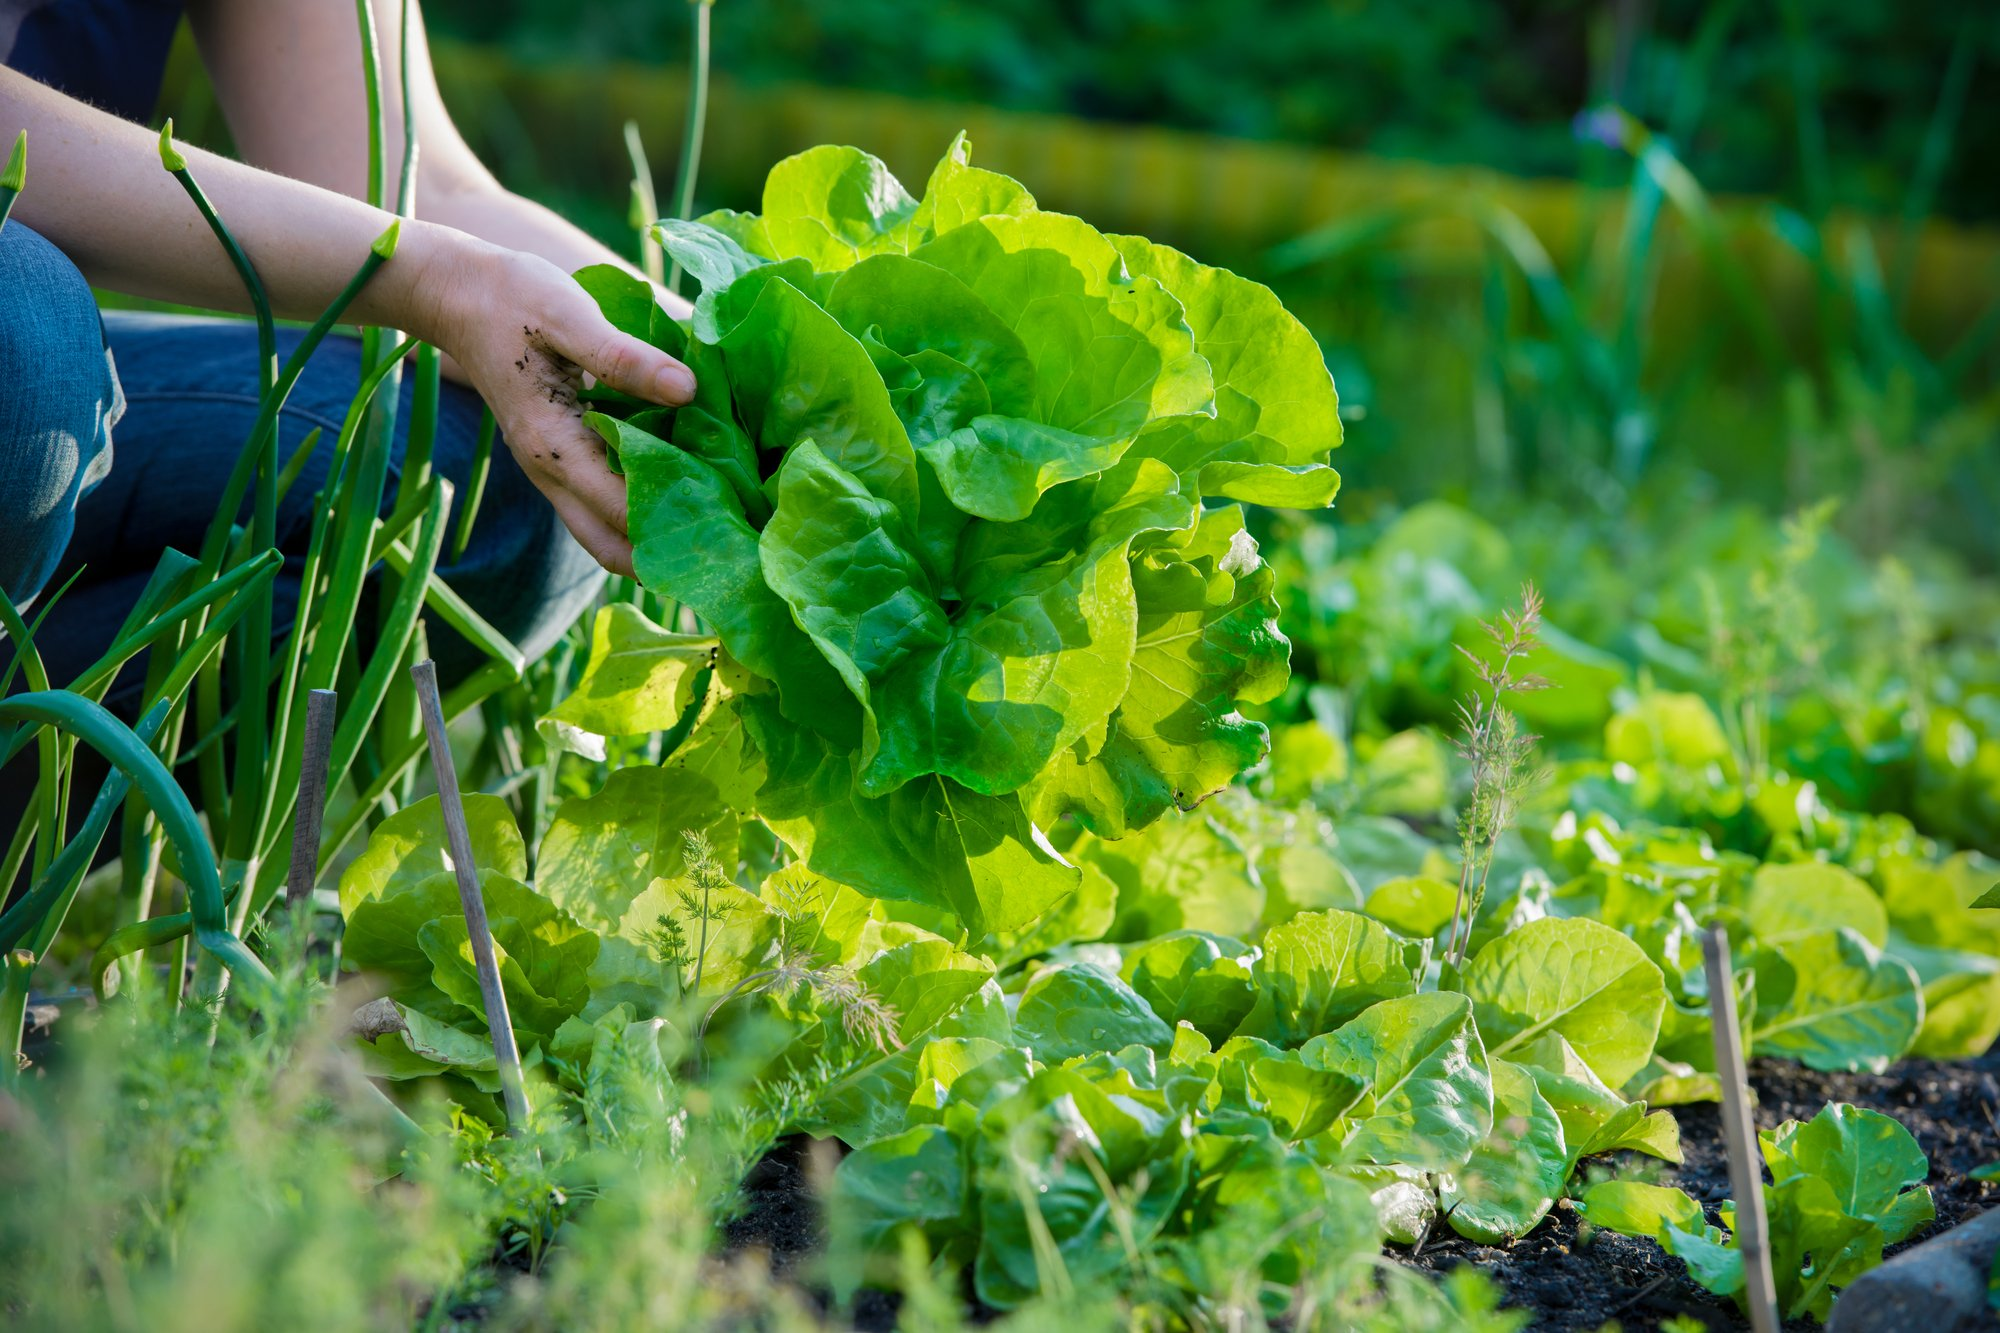 The Ultimate Guide to Starting a Community Garden